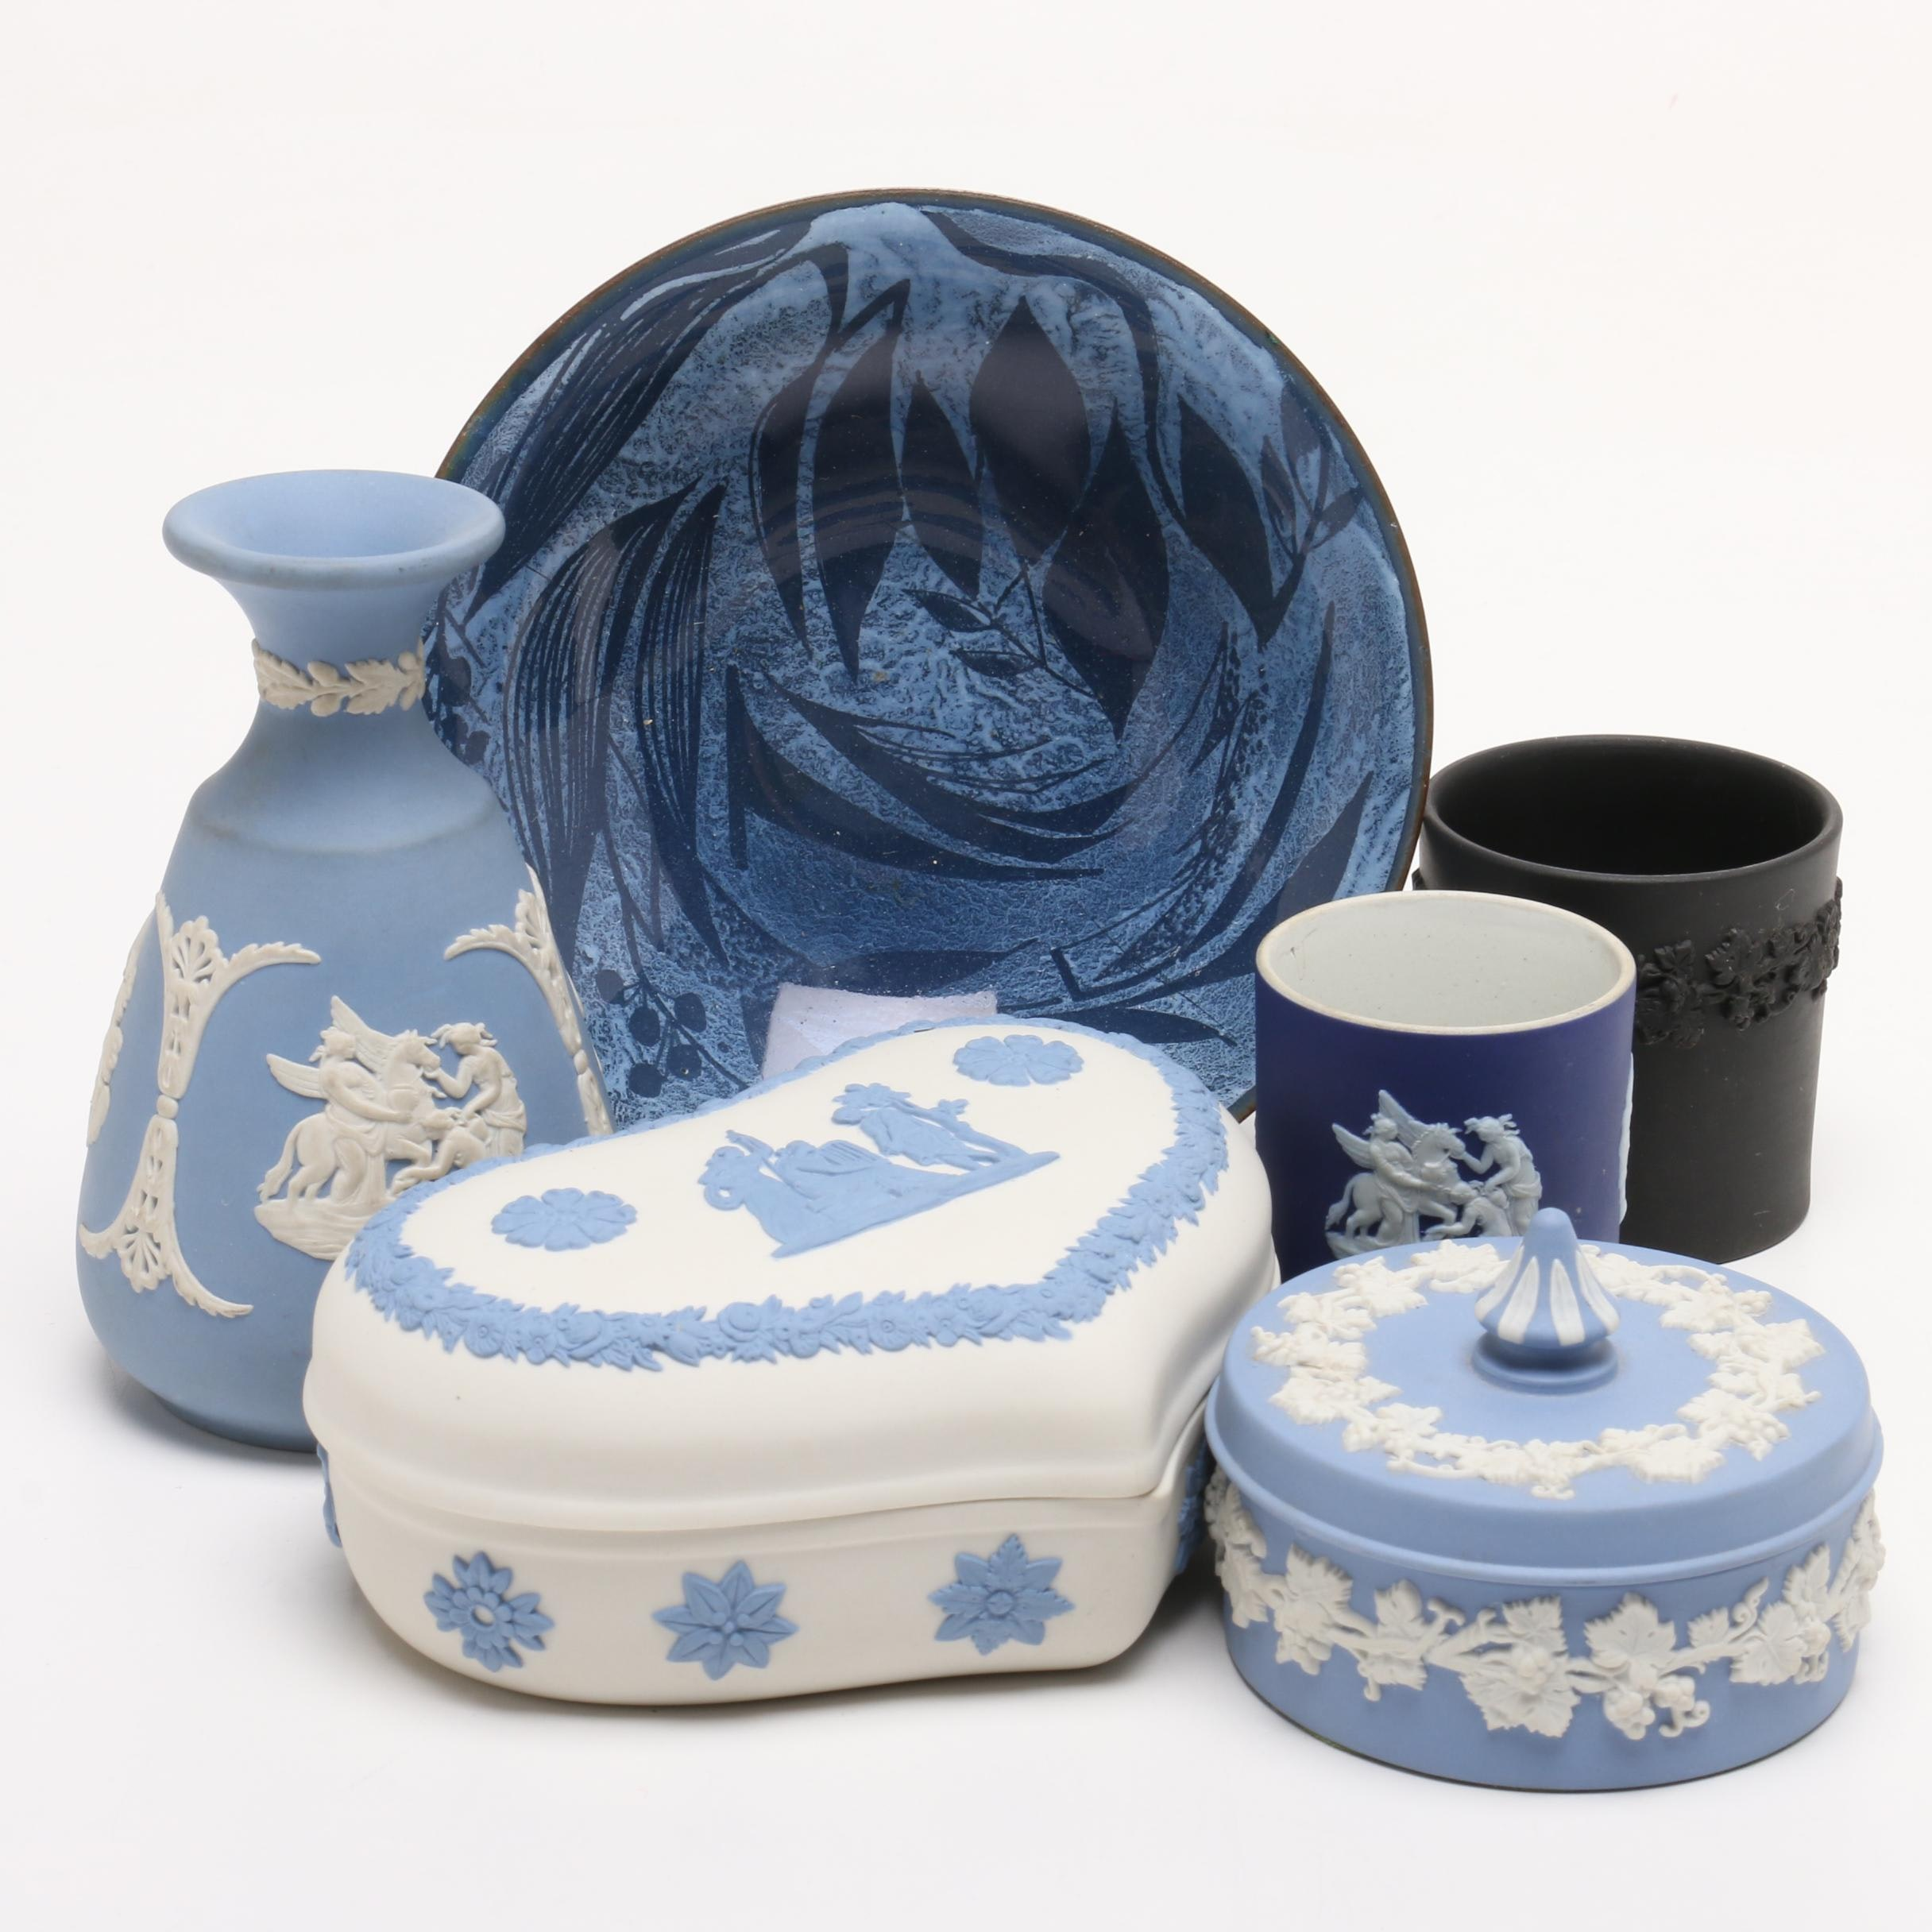 Group of Wedgwood and Other Ceramic Decor